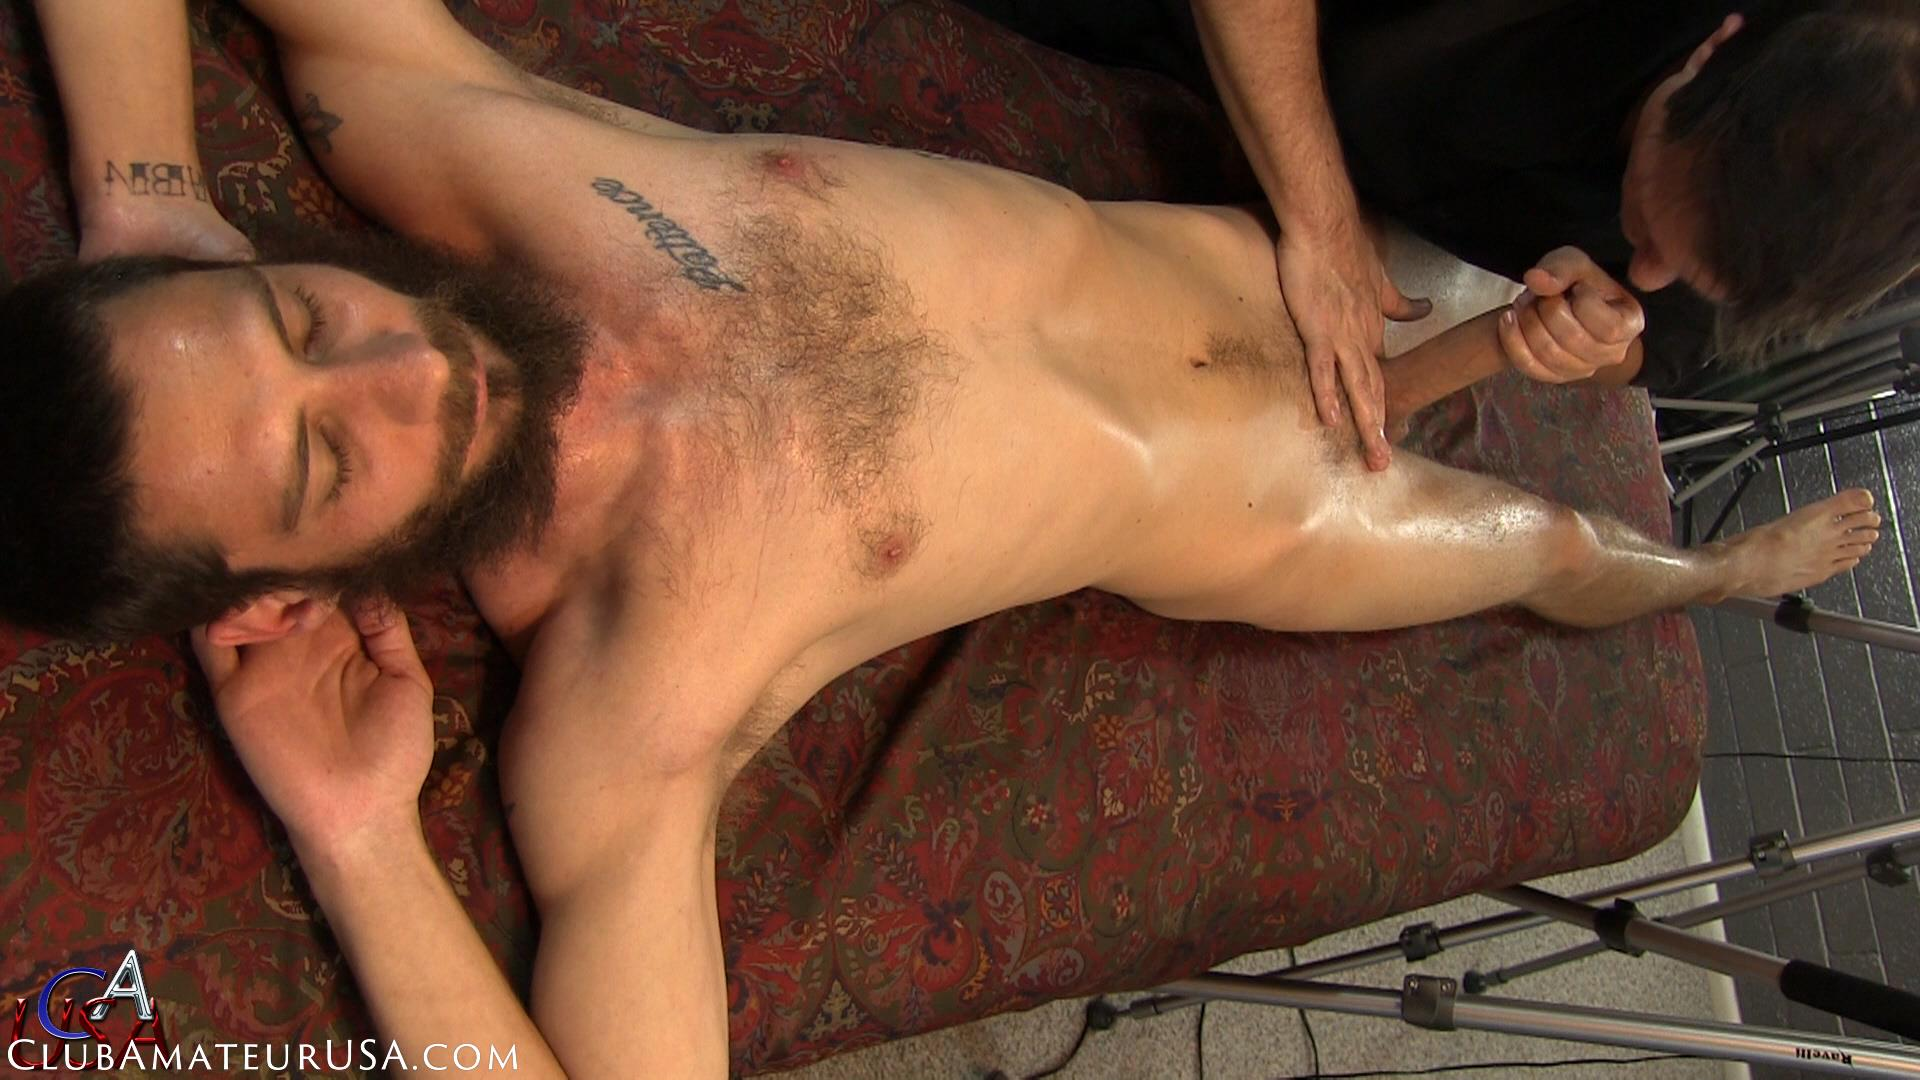 Horny redneck seg gets mouth fucked by nasty fat dude 2